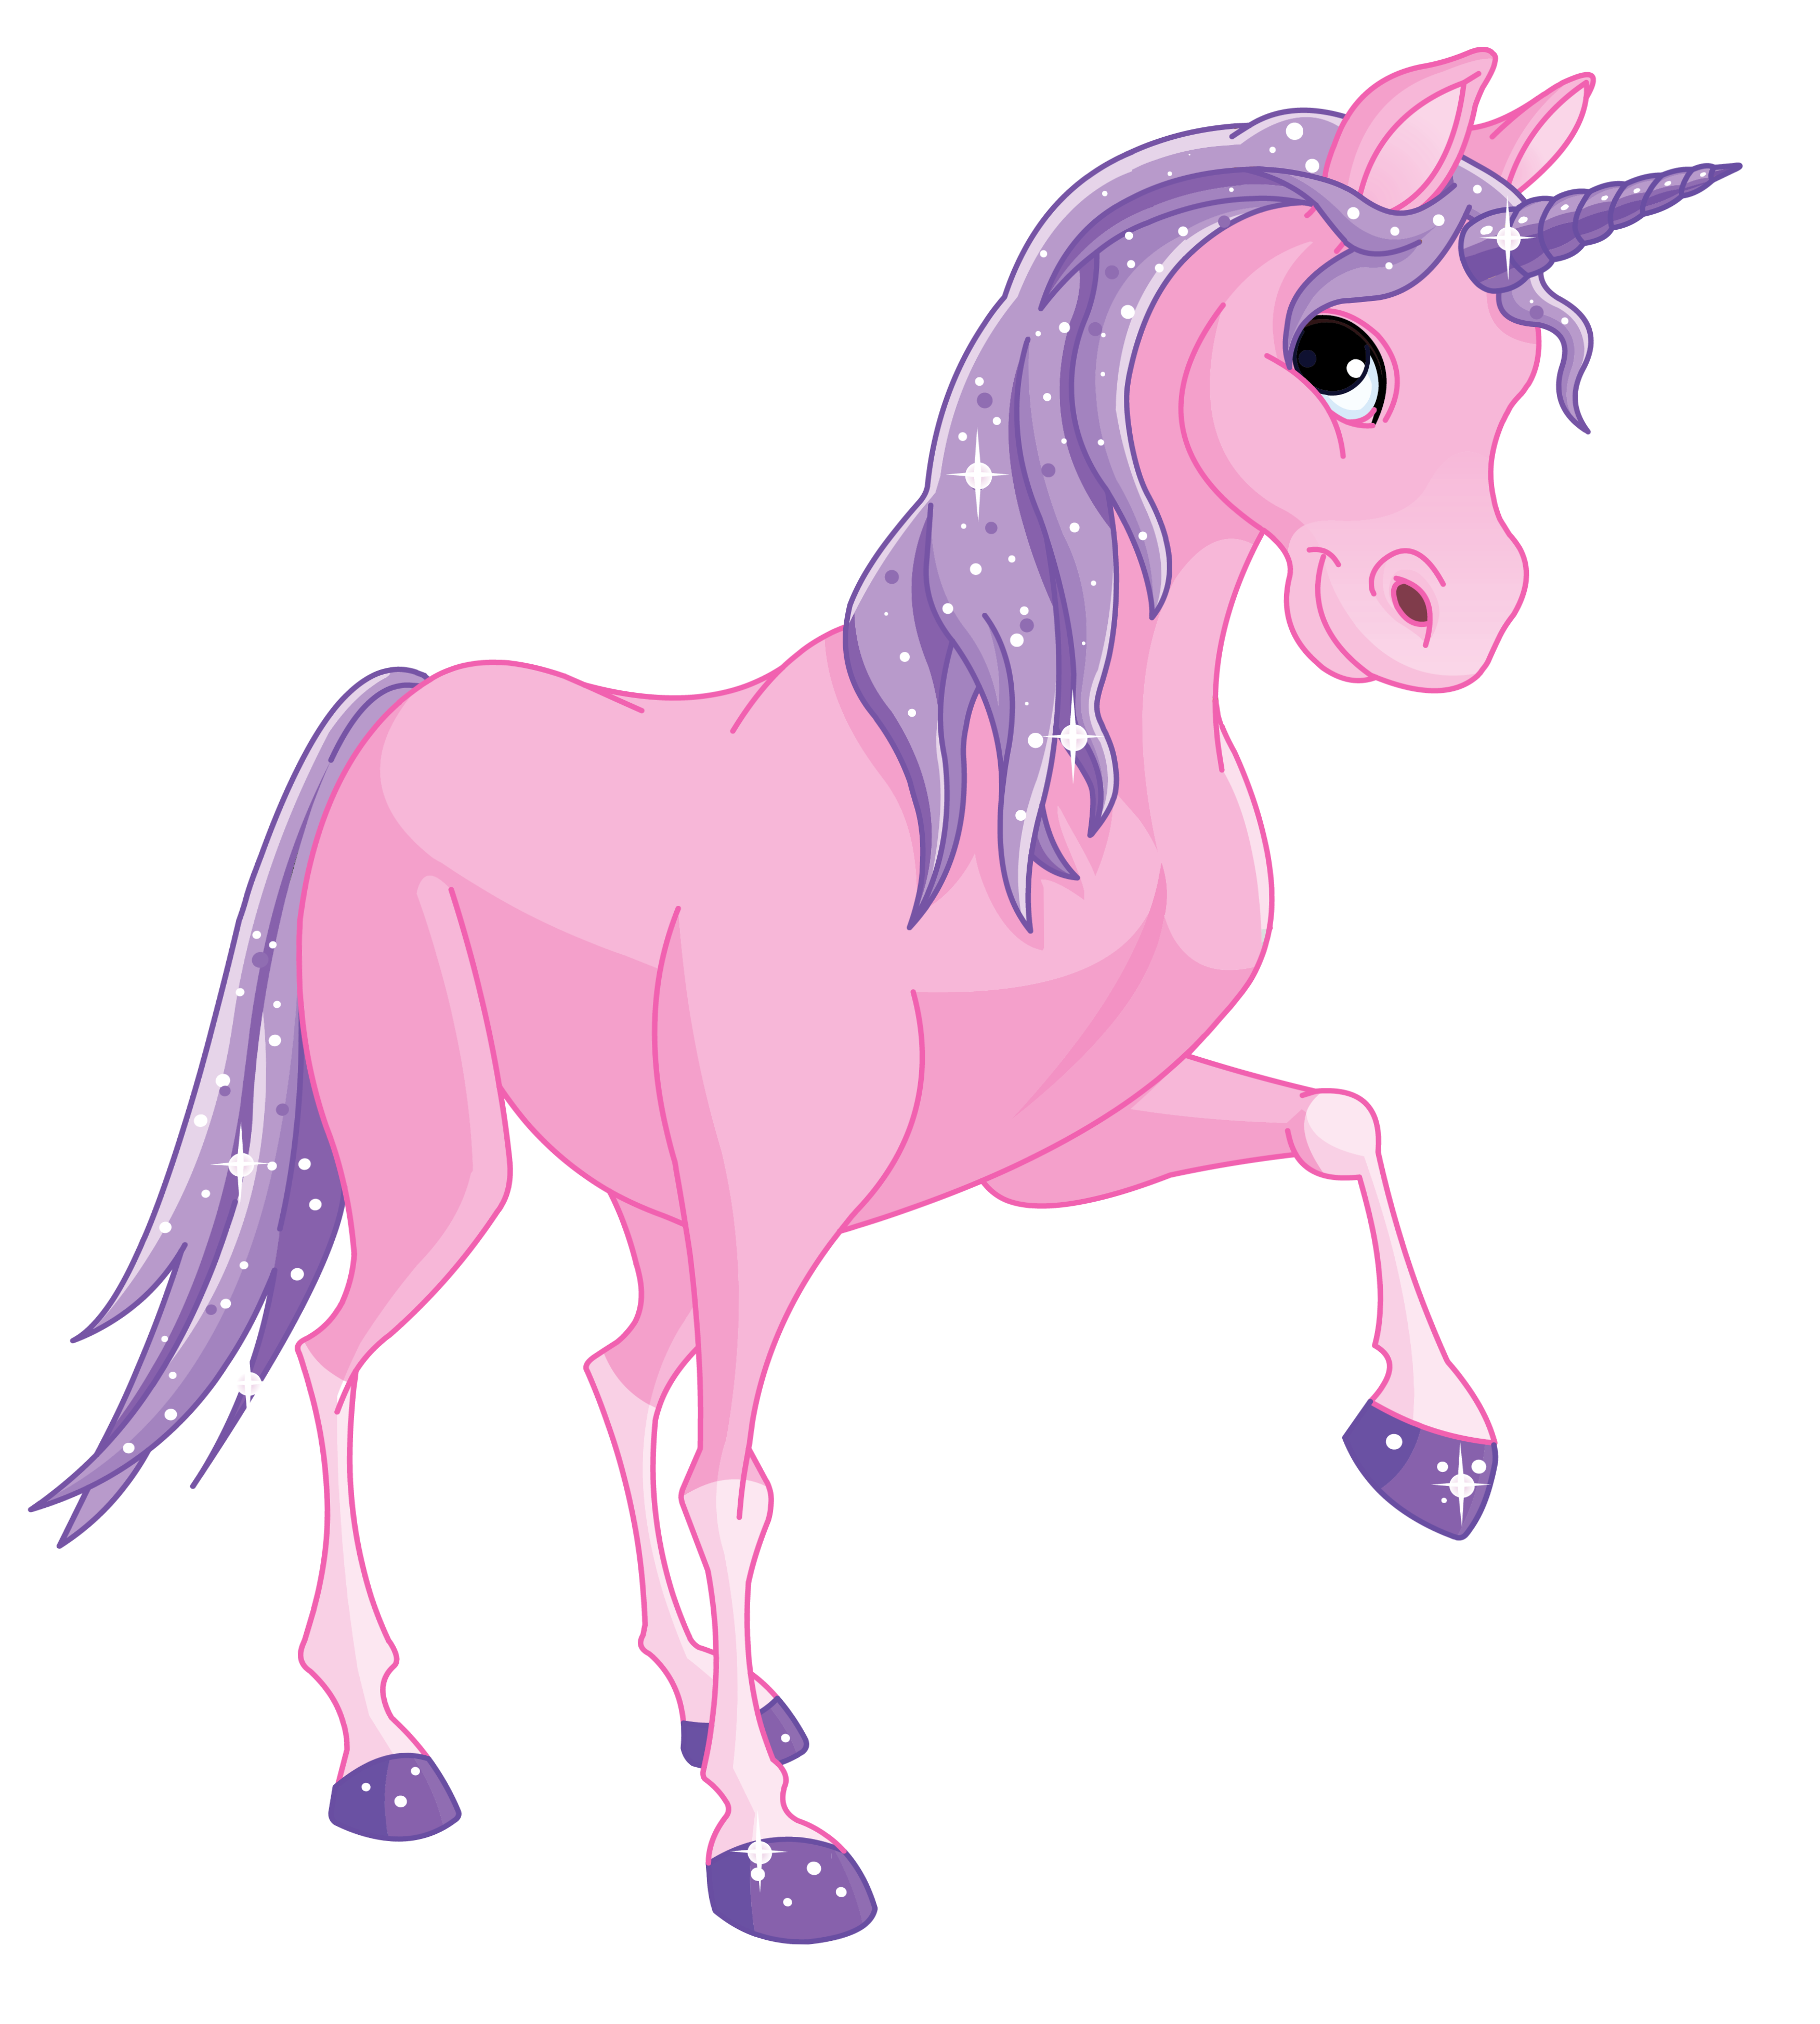 Free unicorn crown clipart png black and white stock Pink Pony Clipart | #unicorns | Pinterest | Pony and Unicorns png black and white stock